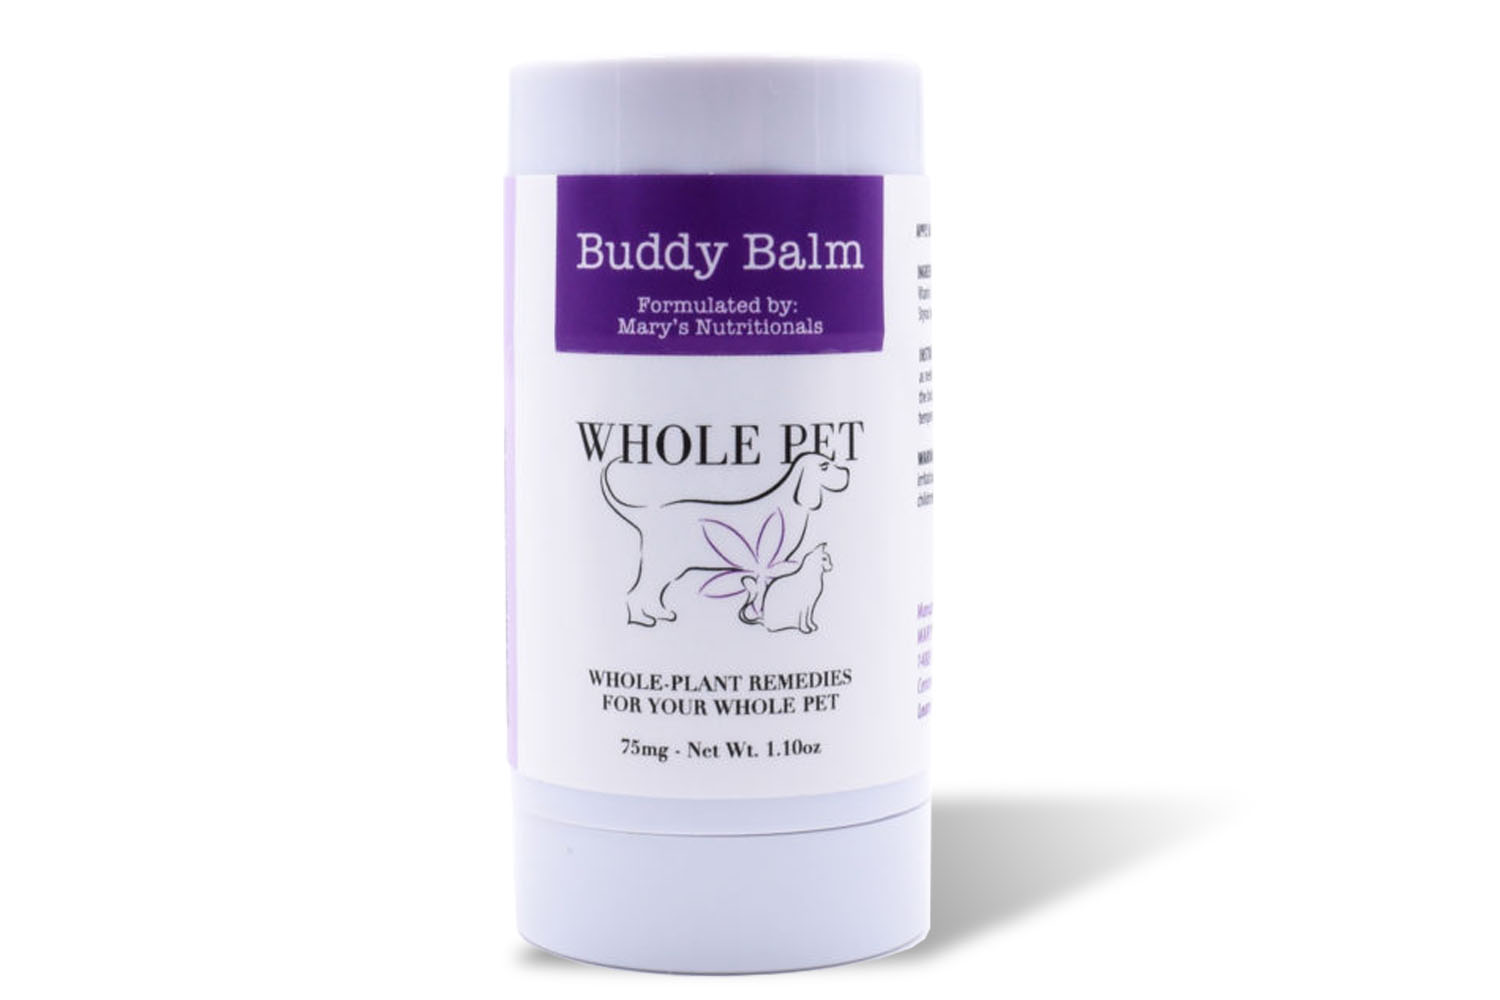 MARYS WHOLE PET_PRODUCT SHOTS_BUDDY BALM.jpg